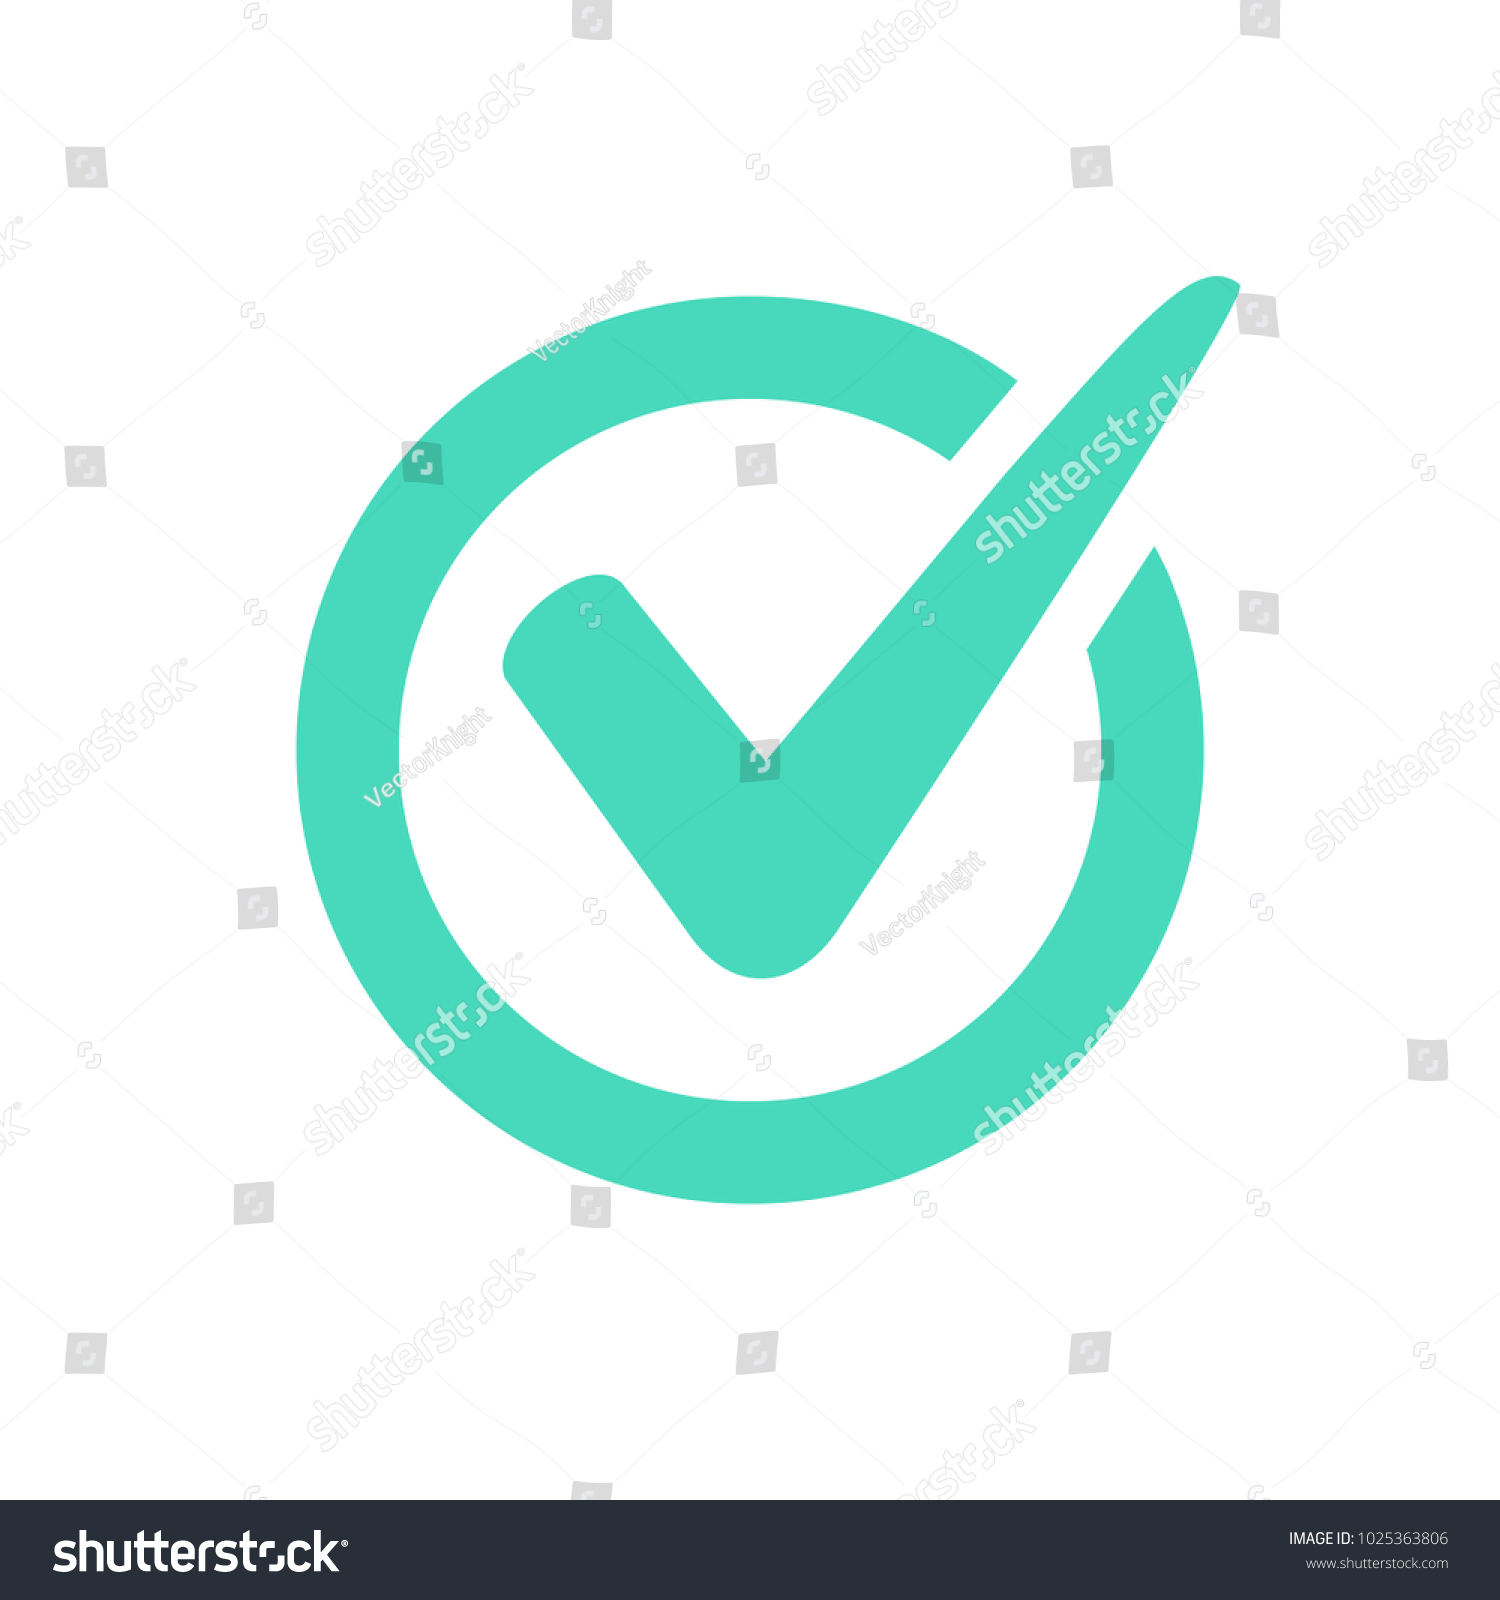 Checkmark symbol in word choice image symbol and sign ideas symbol for choice image collections symbol and sign ideas check mark logo vector icon tick stock buycottarizona